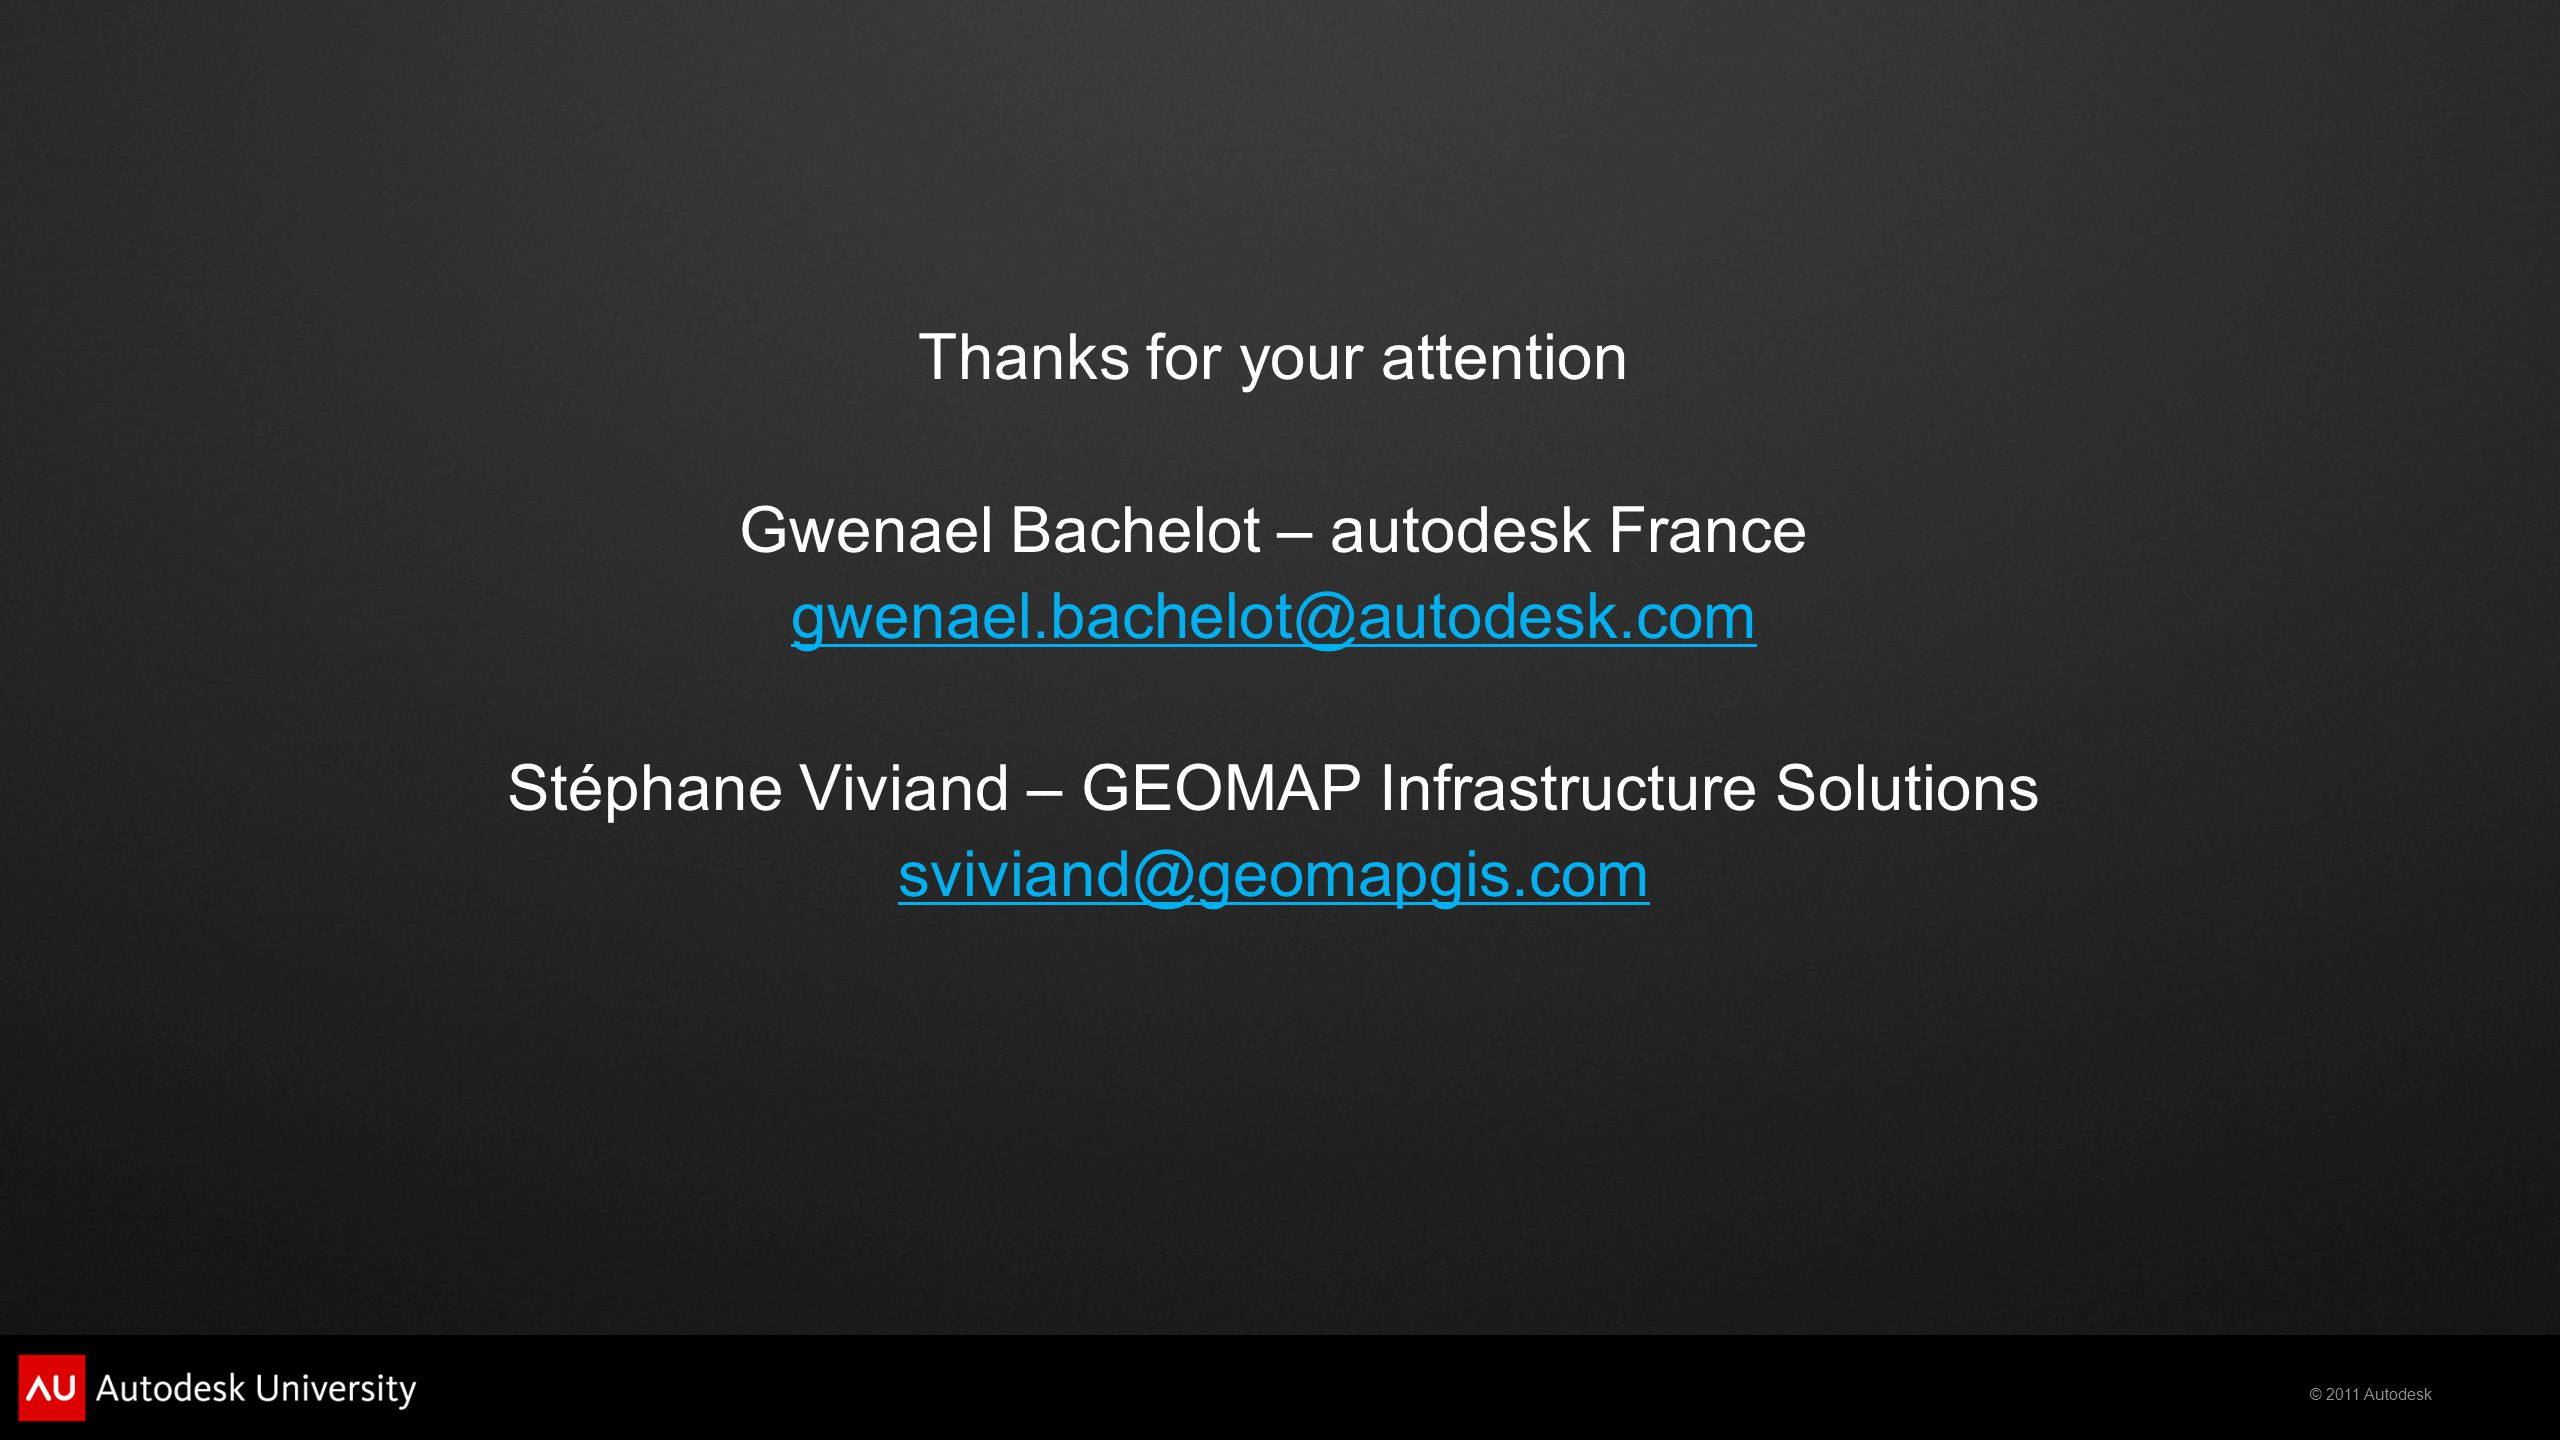 © 2011 Autodesk Thanks for your attention Gwenael Bachelot – autodesk France gwenael.bachelot@autodesk.com Stéphane Viviand – GEOMAP Infrastructure Solutions sviviand@geomapgis.com